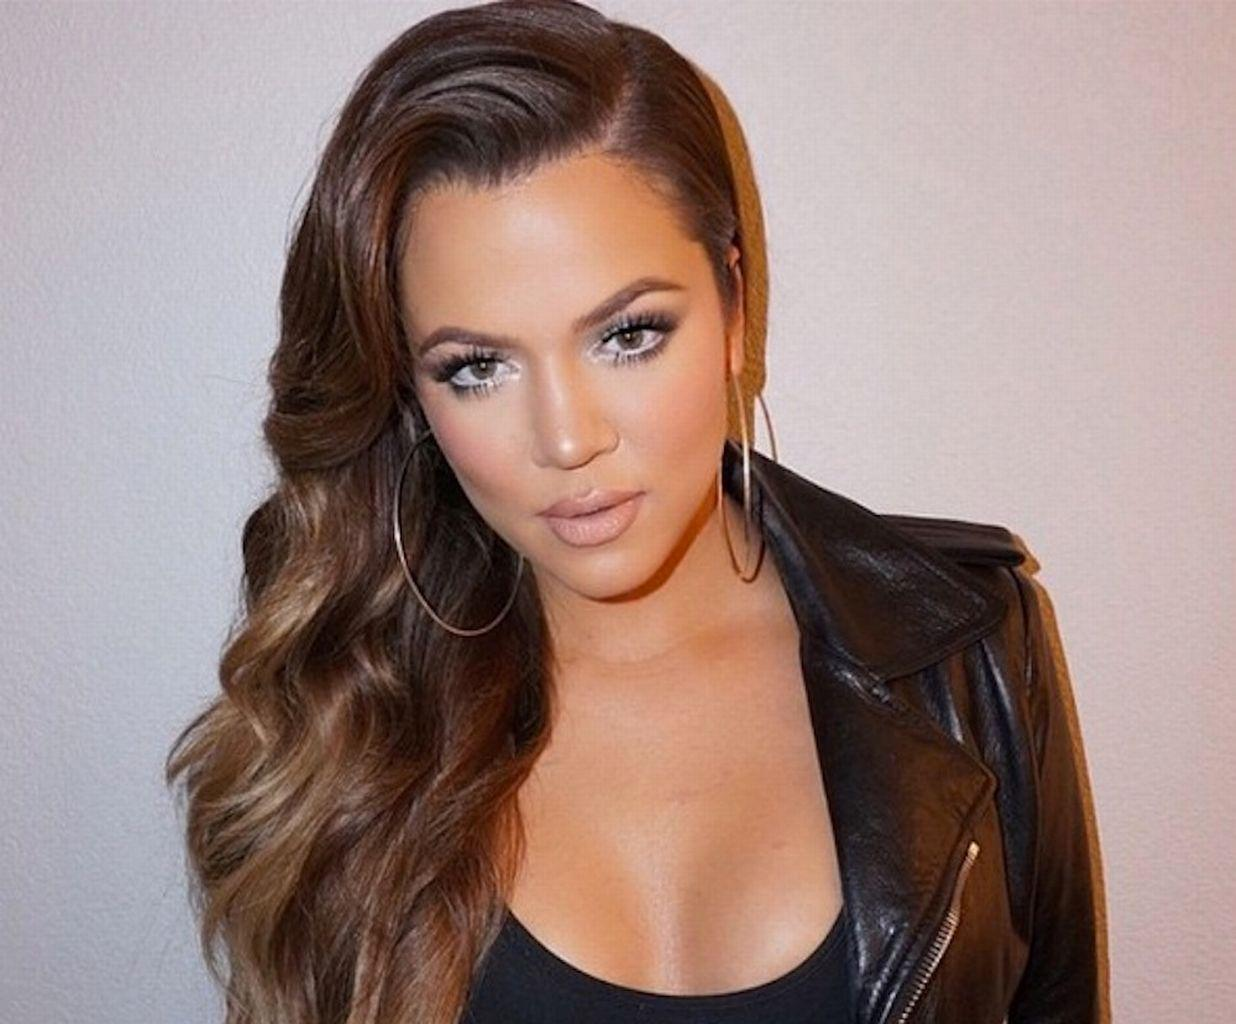 Khloe Kardashian's Fans Are In Love With Her New Look